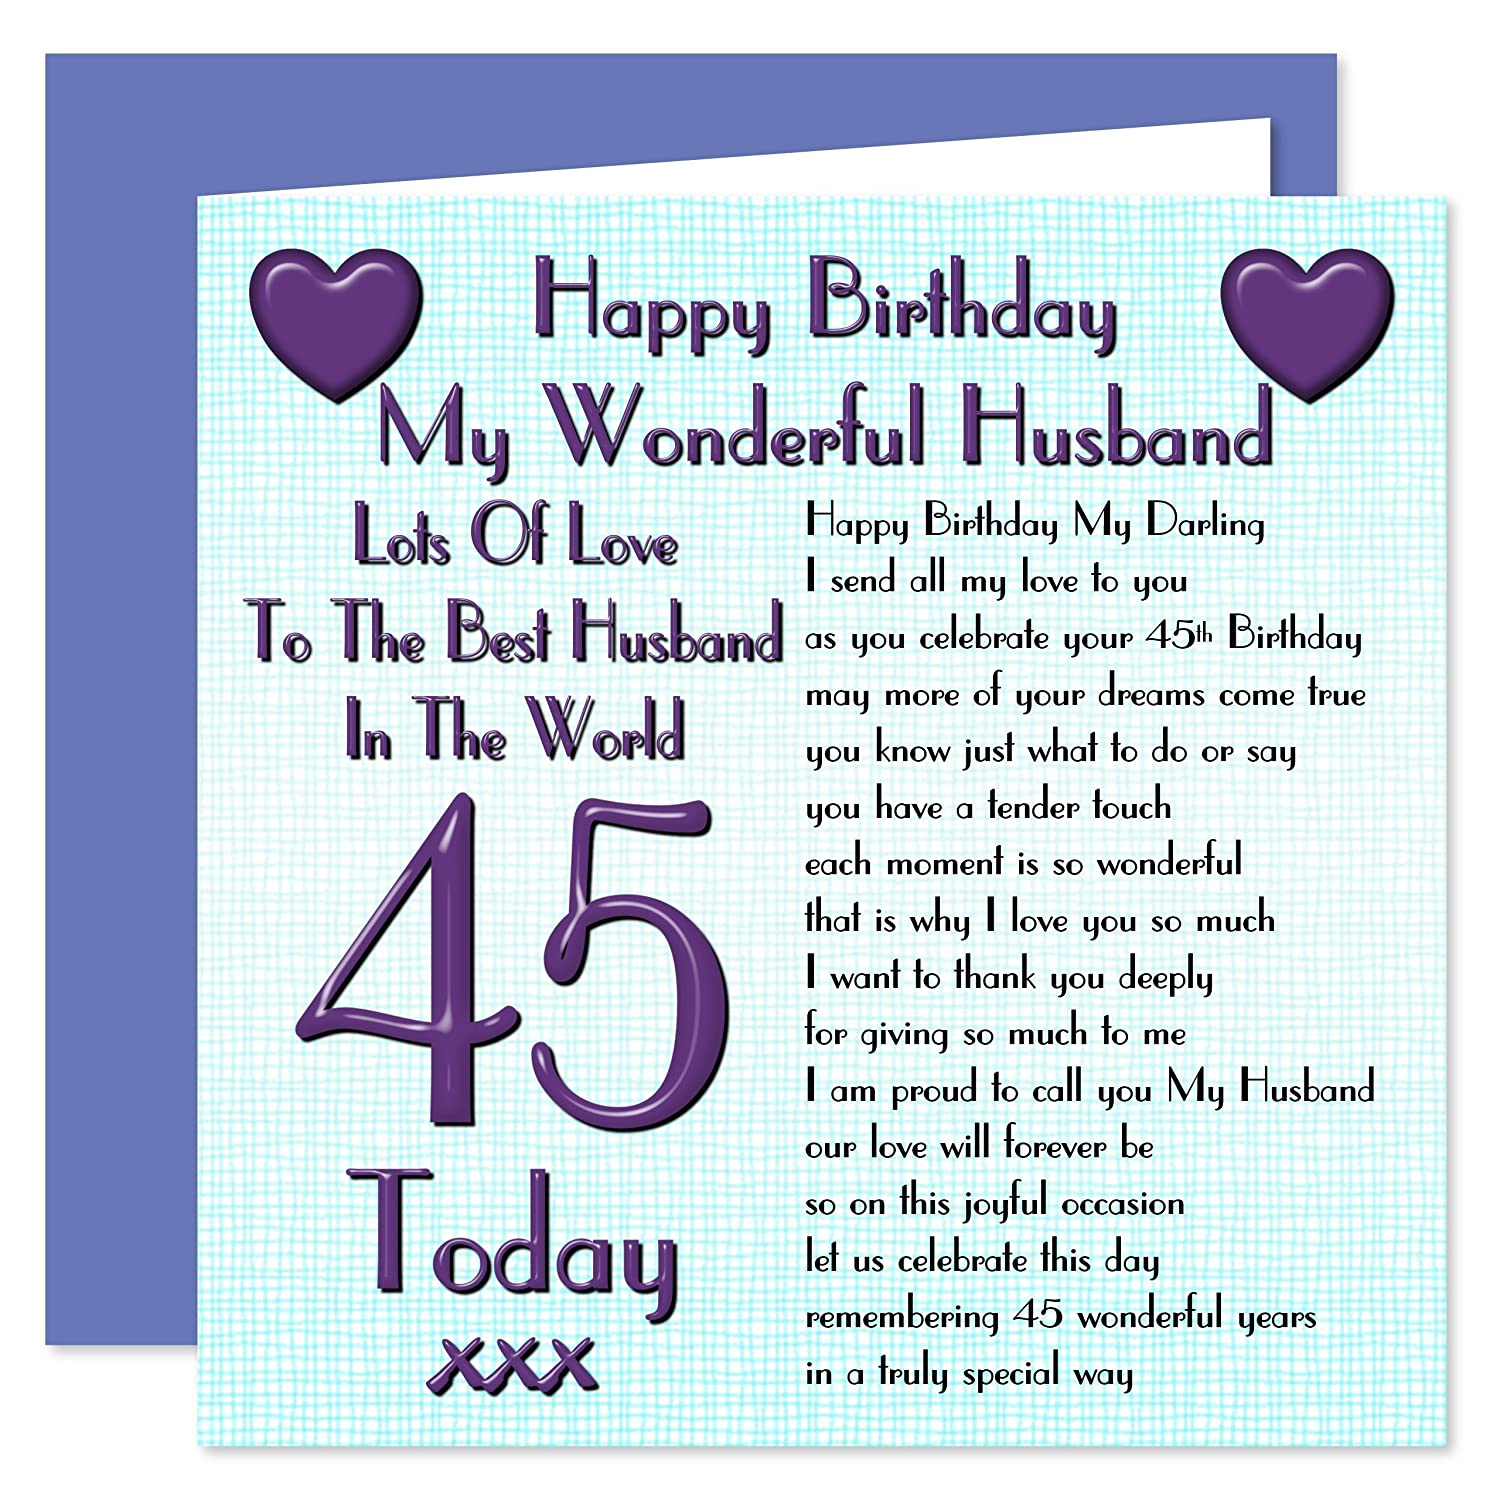 Husband 45th happy birthday card lots of love to the best husband husband 45th happy birthday card lots of love to the best husband in the world 45 today amazon office products kristyandbryce Images